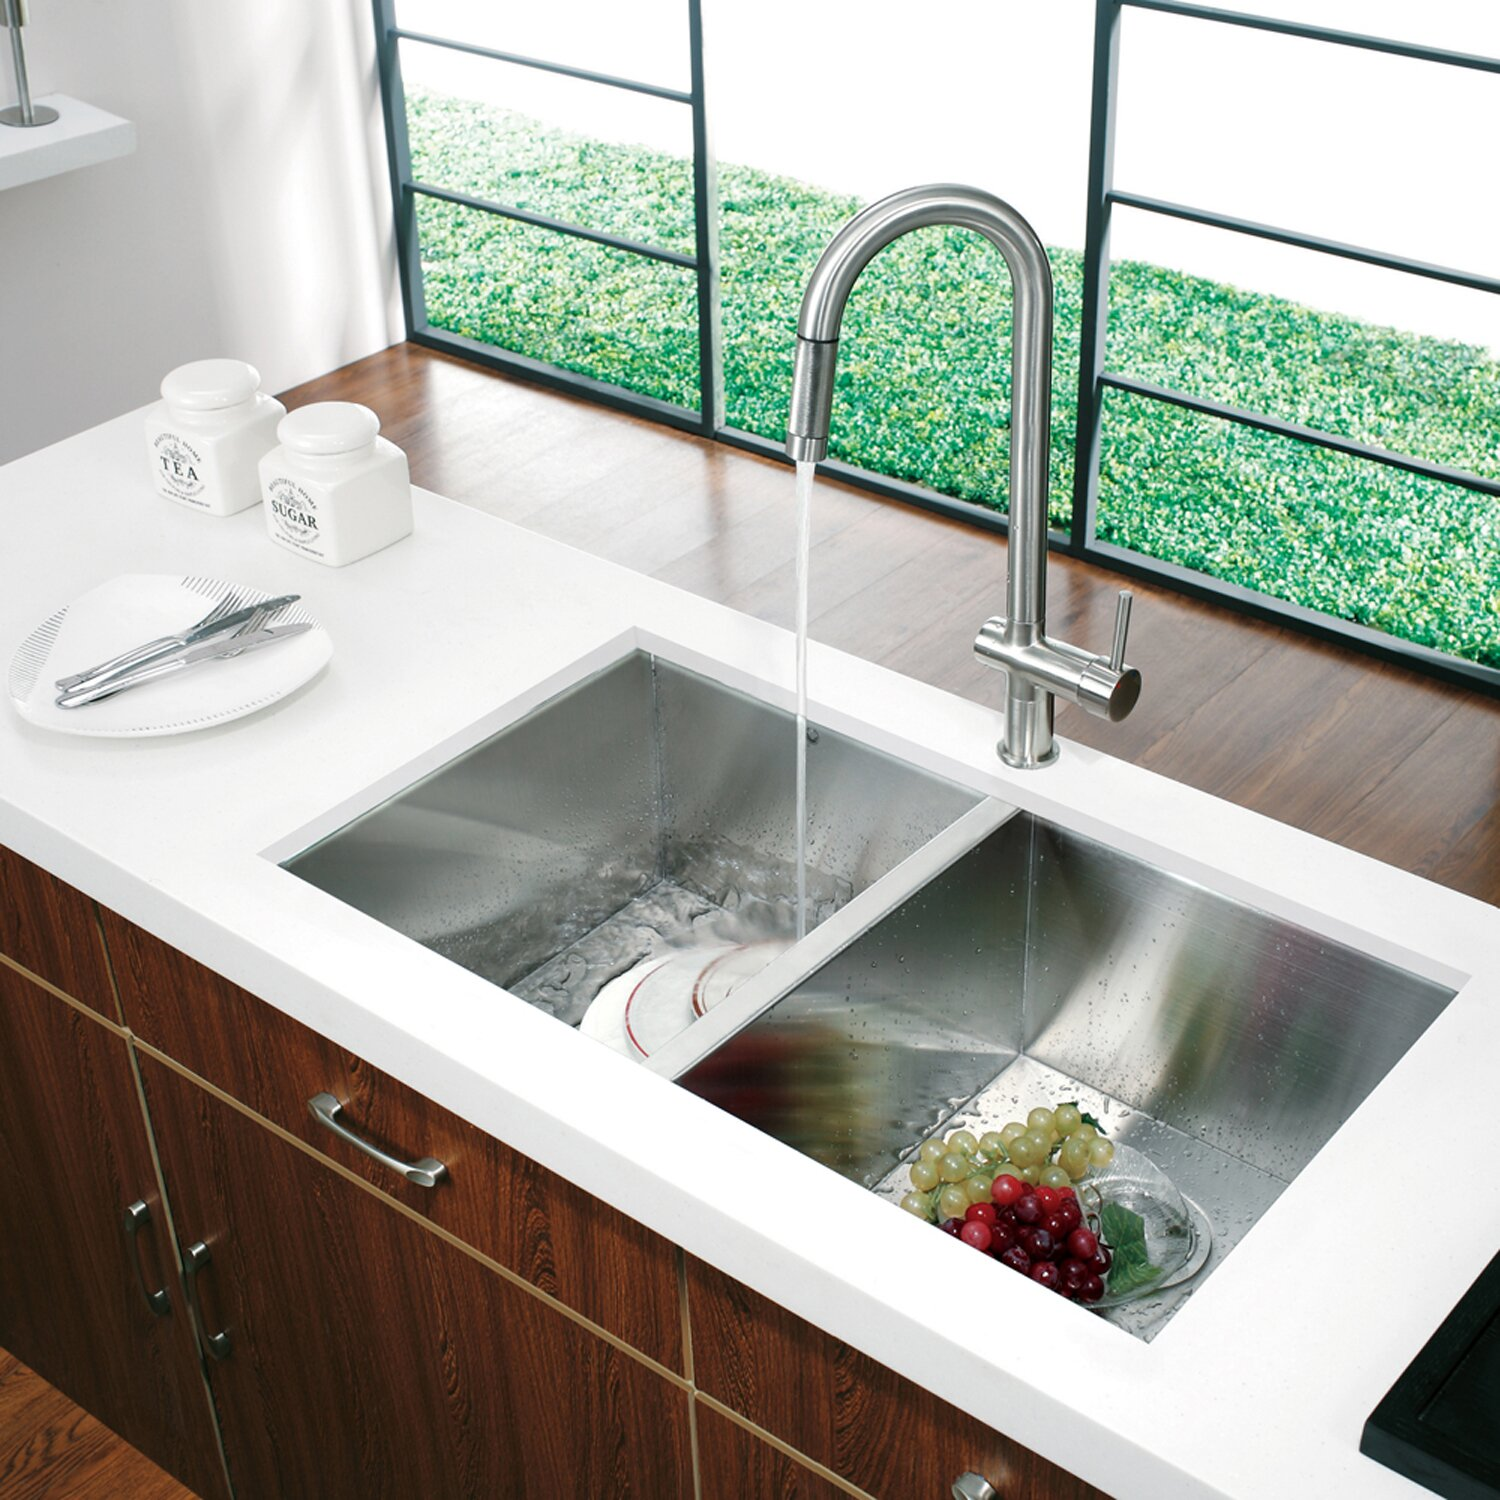 Kitchen Undermount Sink : Freely to save the pictures for personal purposes only, do not sale it ...